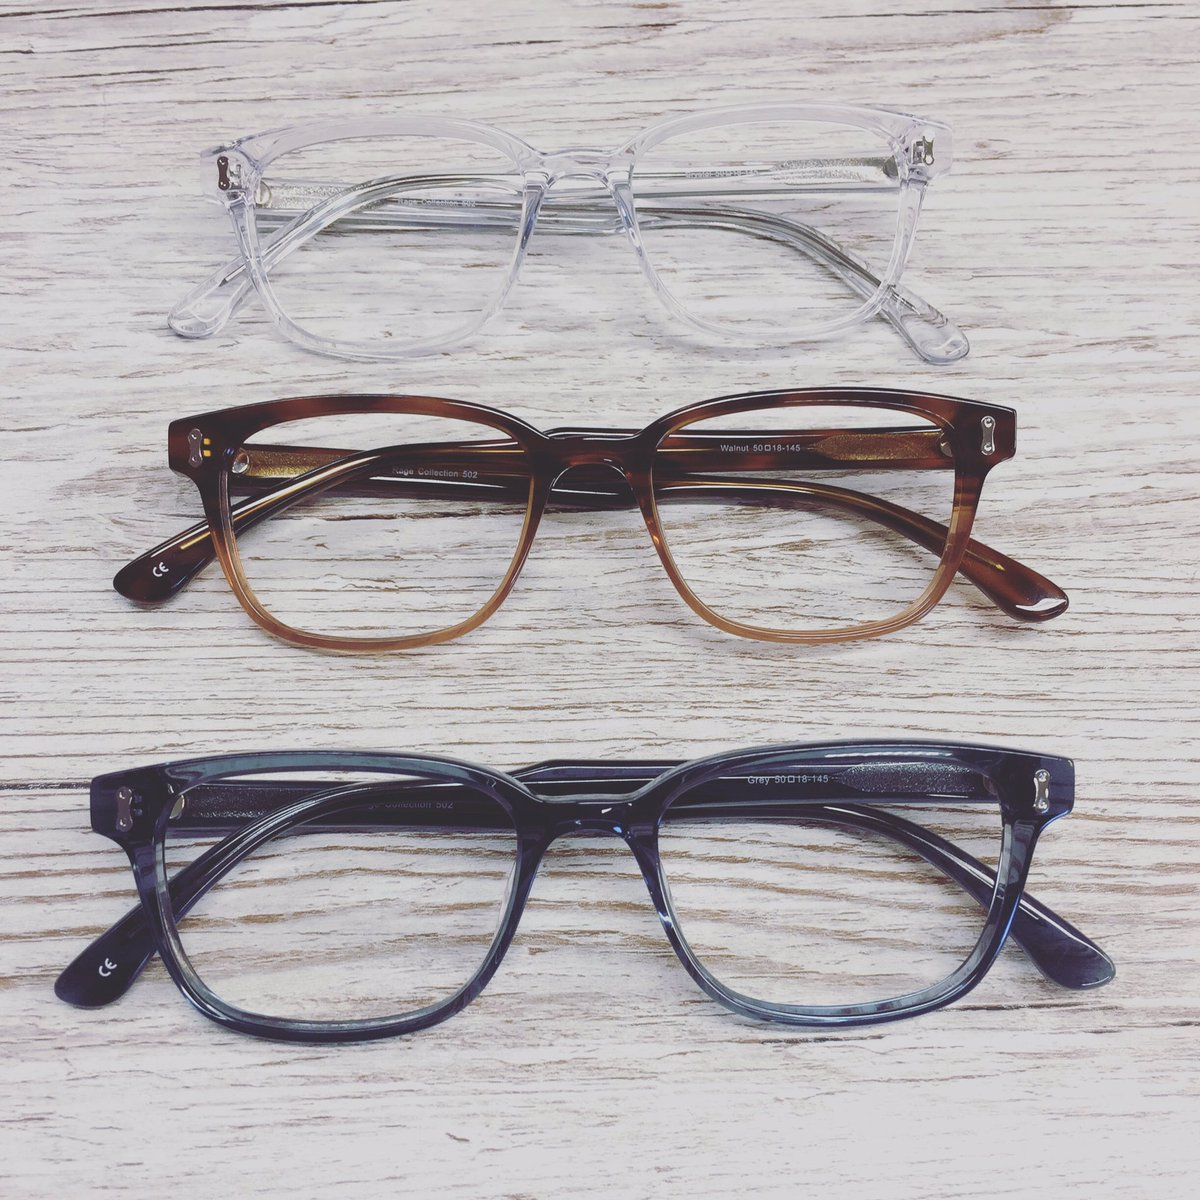 0edde61509f1 Order your on approval collection at http   www.mirage-eyewear.co.uk   mirage  mirageeyewear  specs  glasses  frames  newport  shropshire   opticians ...